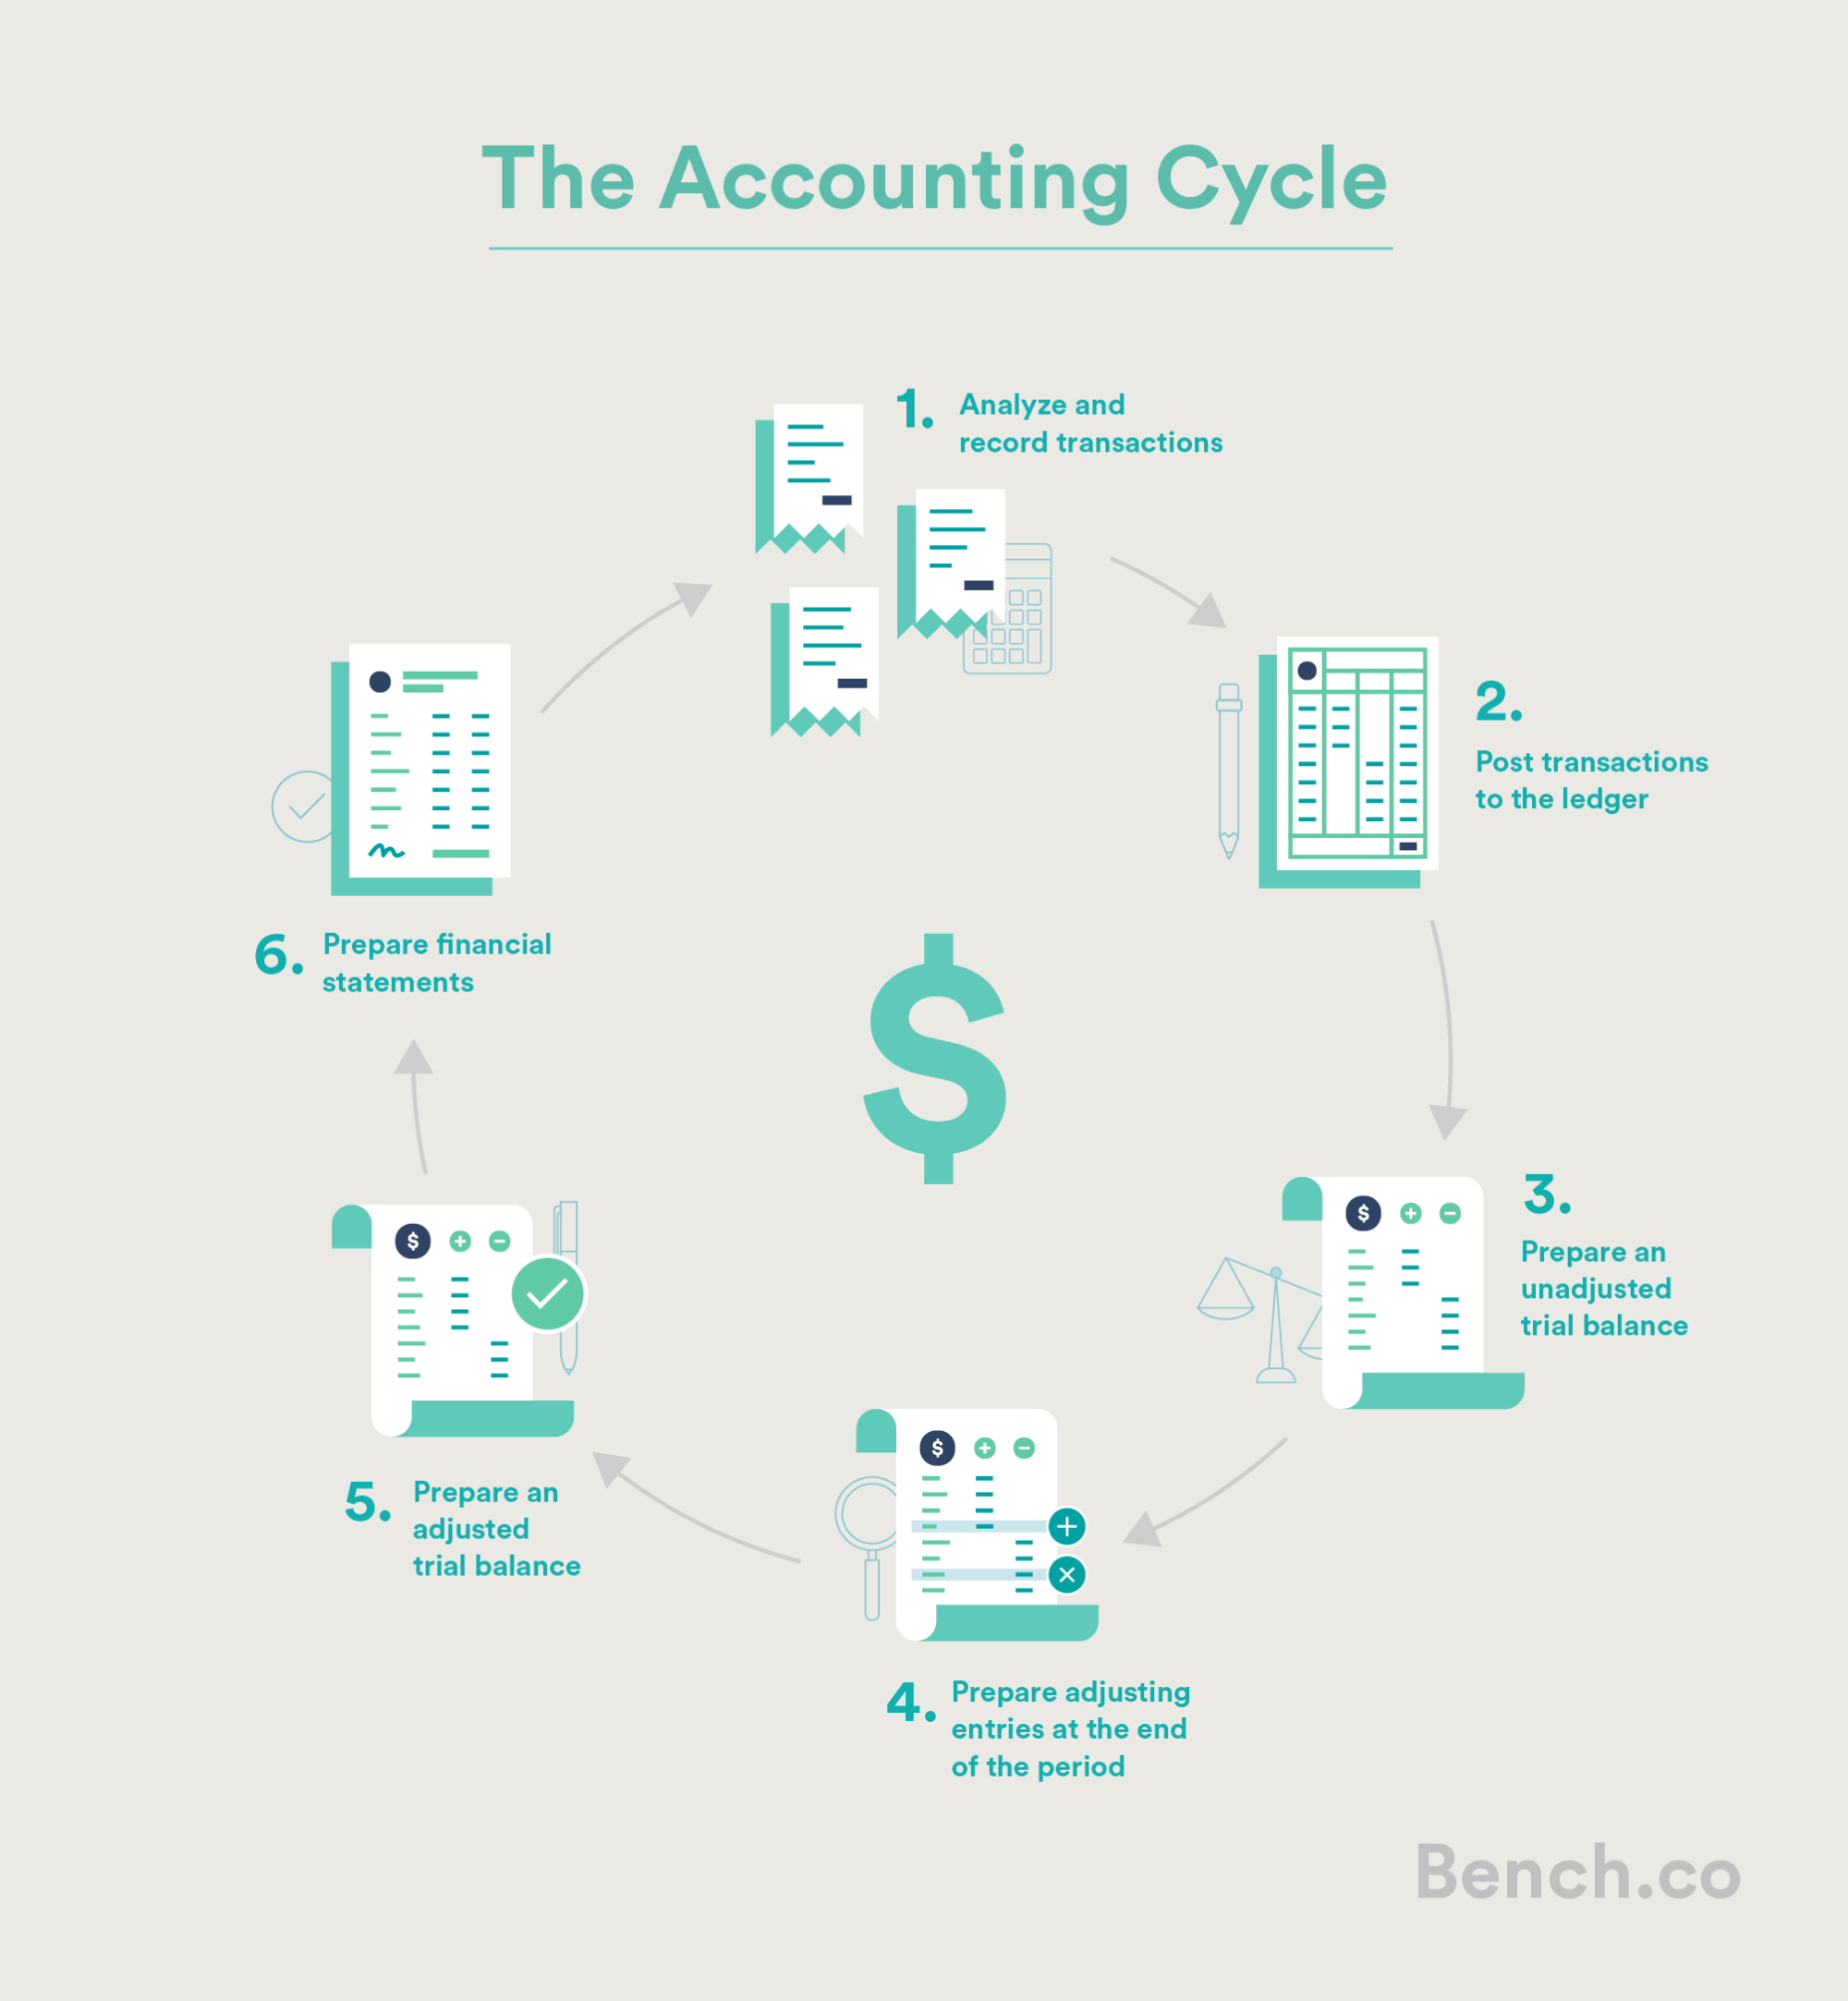 hight resolution of A Beginner's Guide to The Accounting Cycle   Bench Accounting